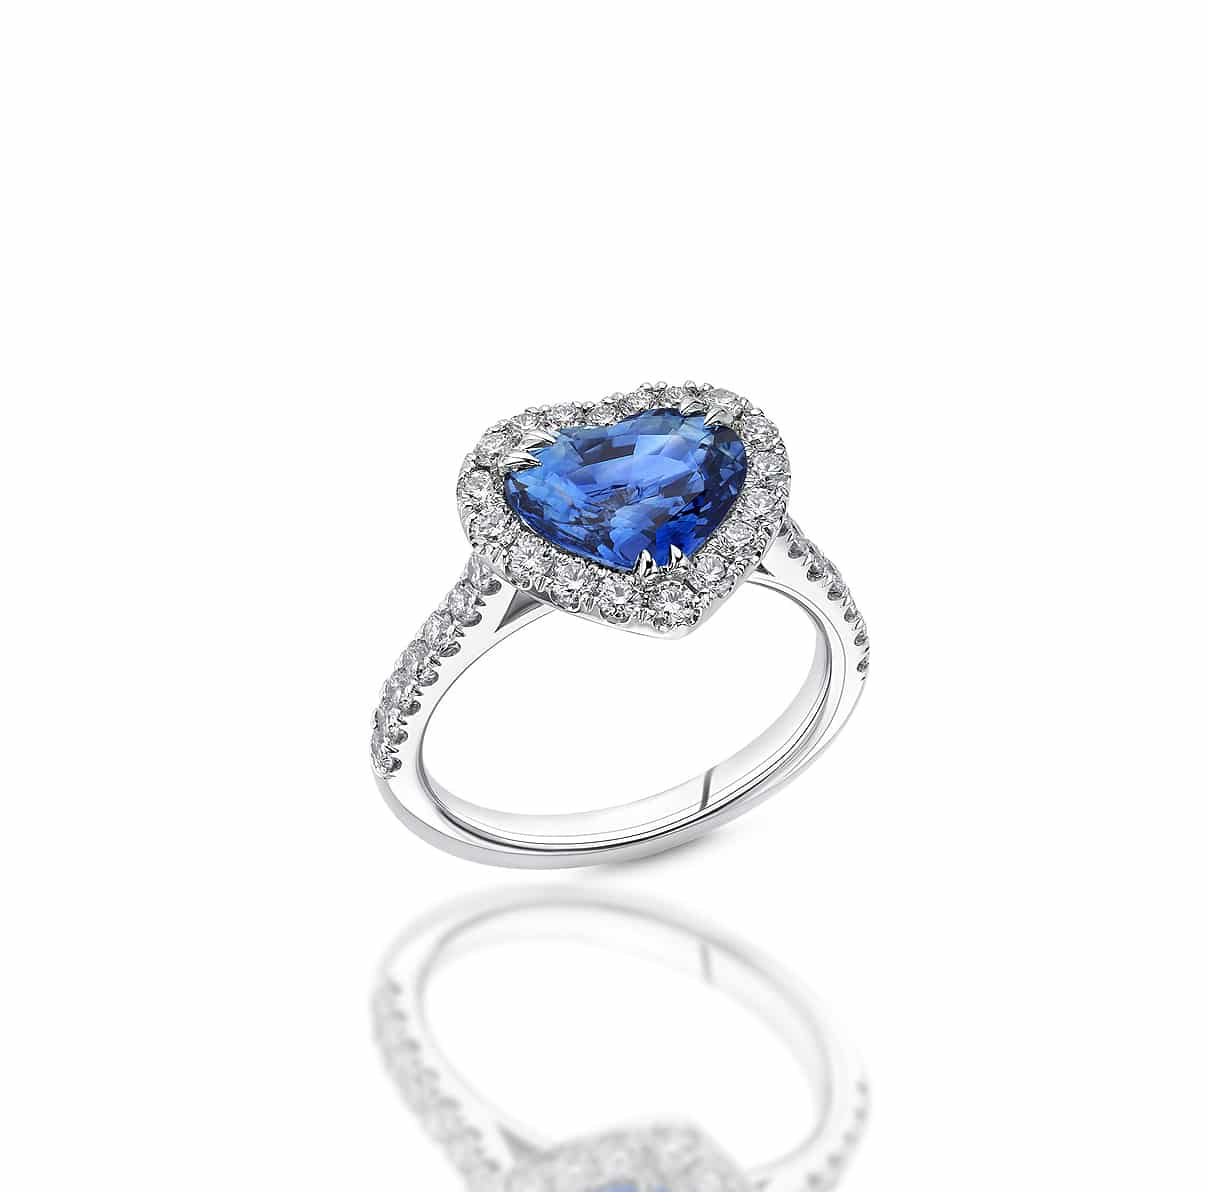 HEART SAPPHIRE AND DIAMOND ENGAGEMENT RING